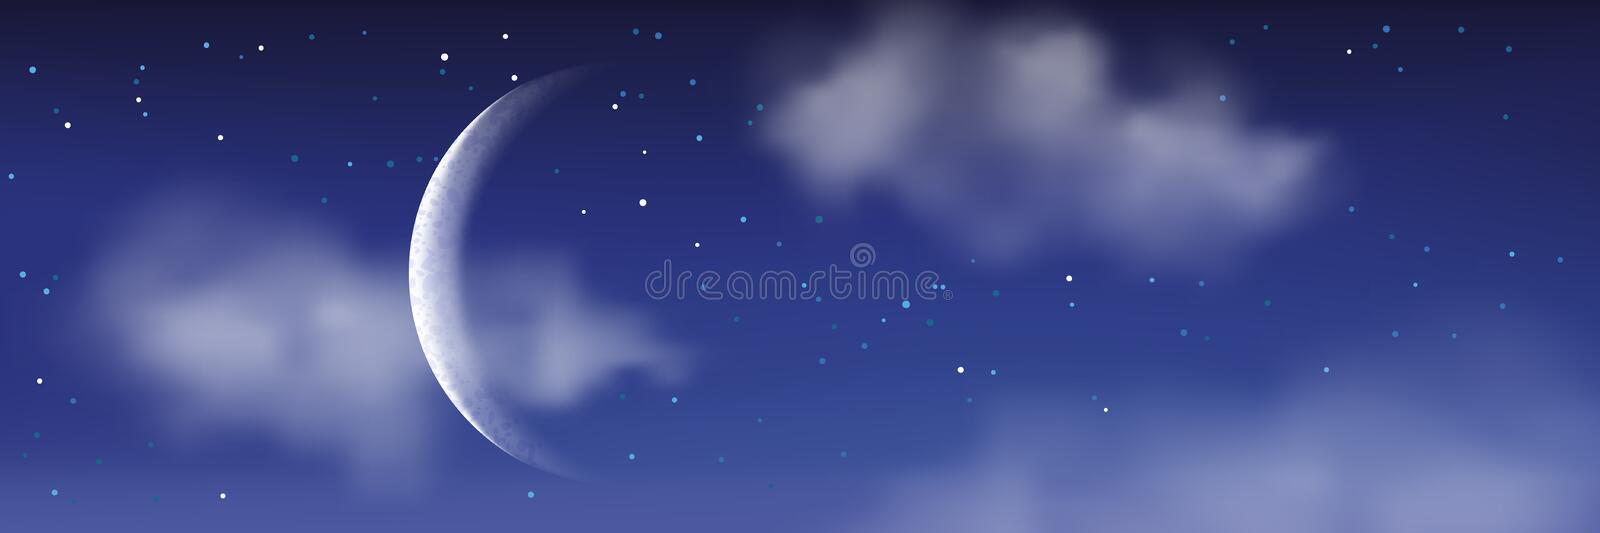 Vector realistic illustration of night cloudscape. Moon, stars, clouds on blue sky. Romantic landscape background stock illustration